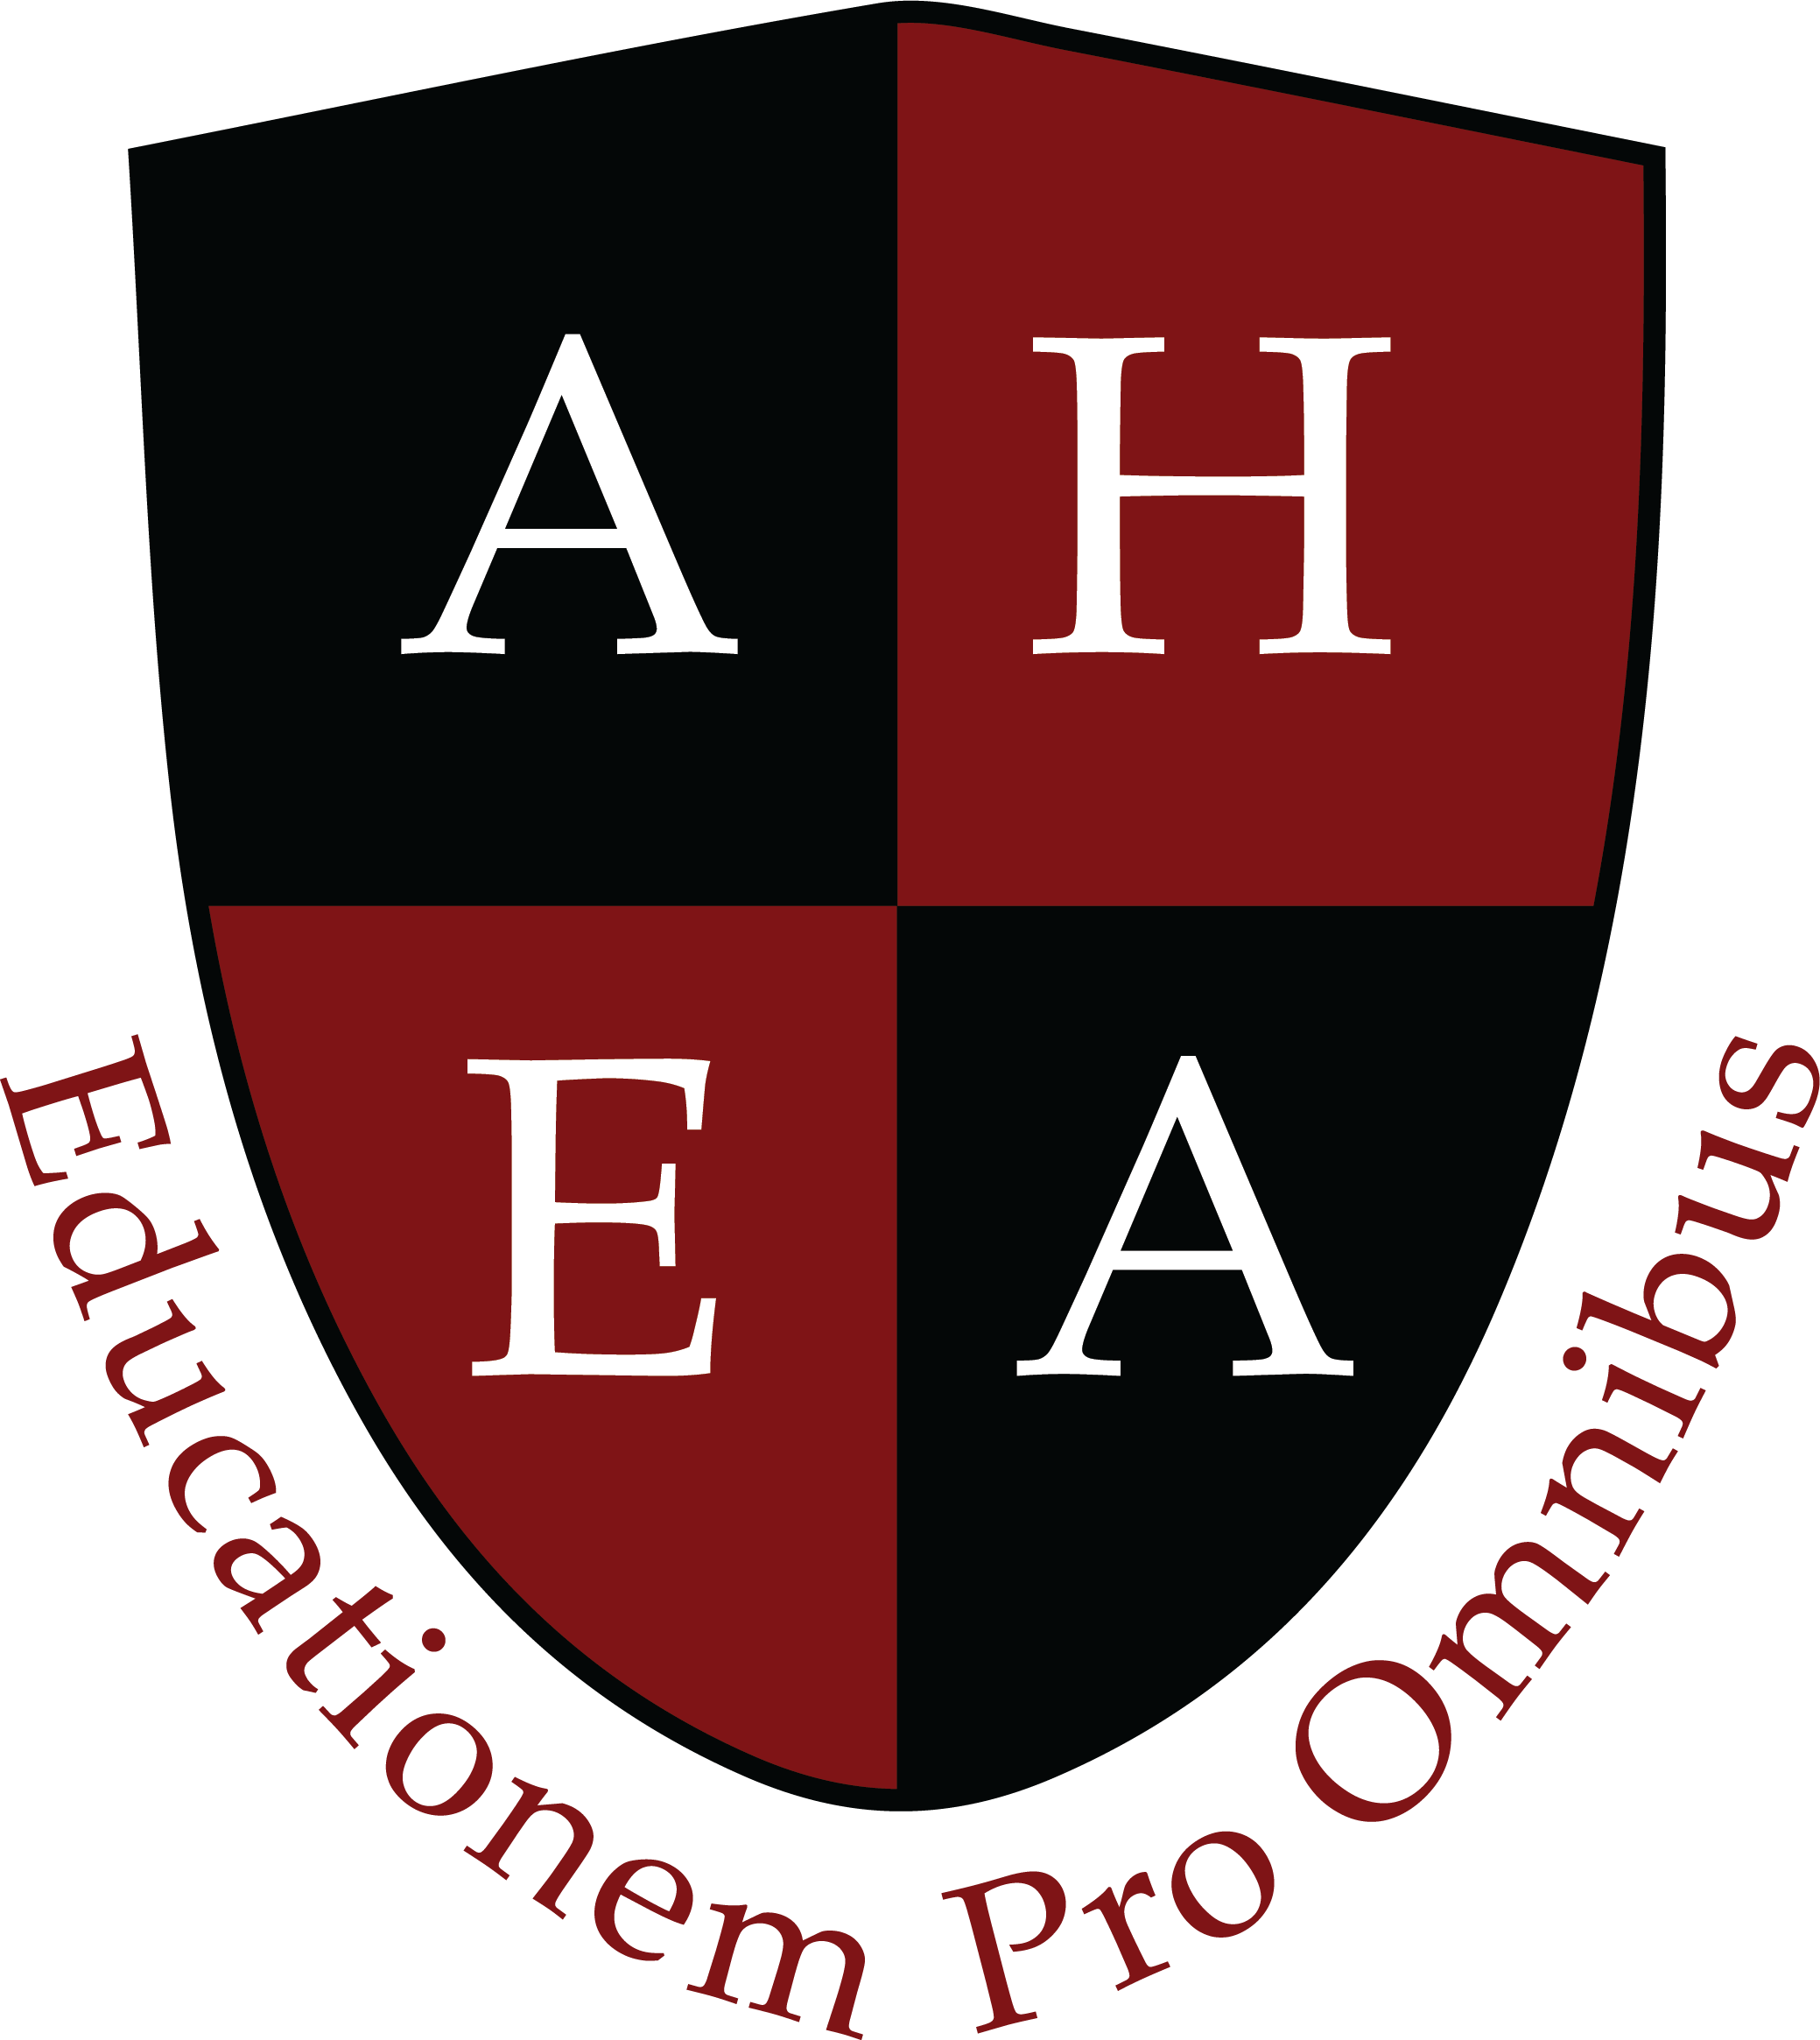 AHEA Logo Shield red text